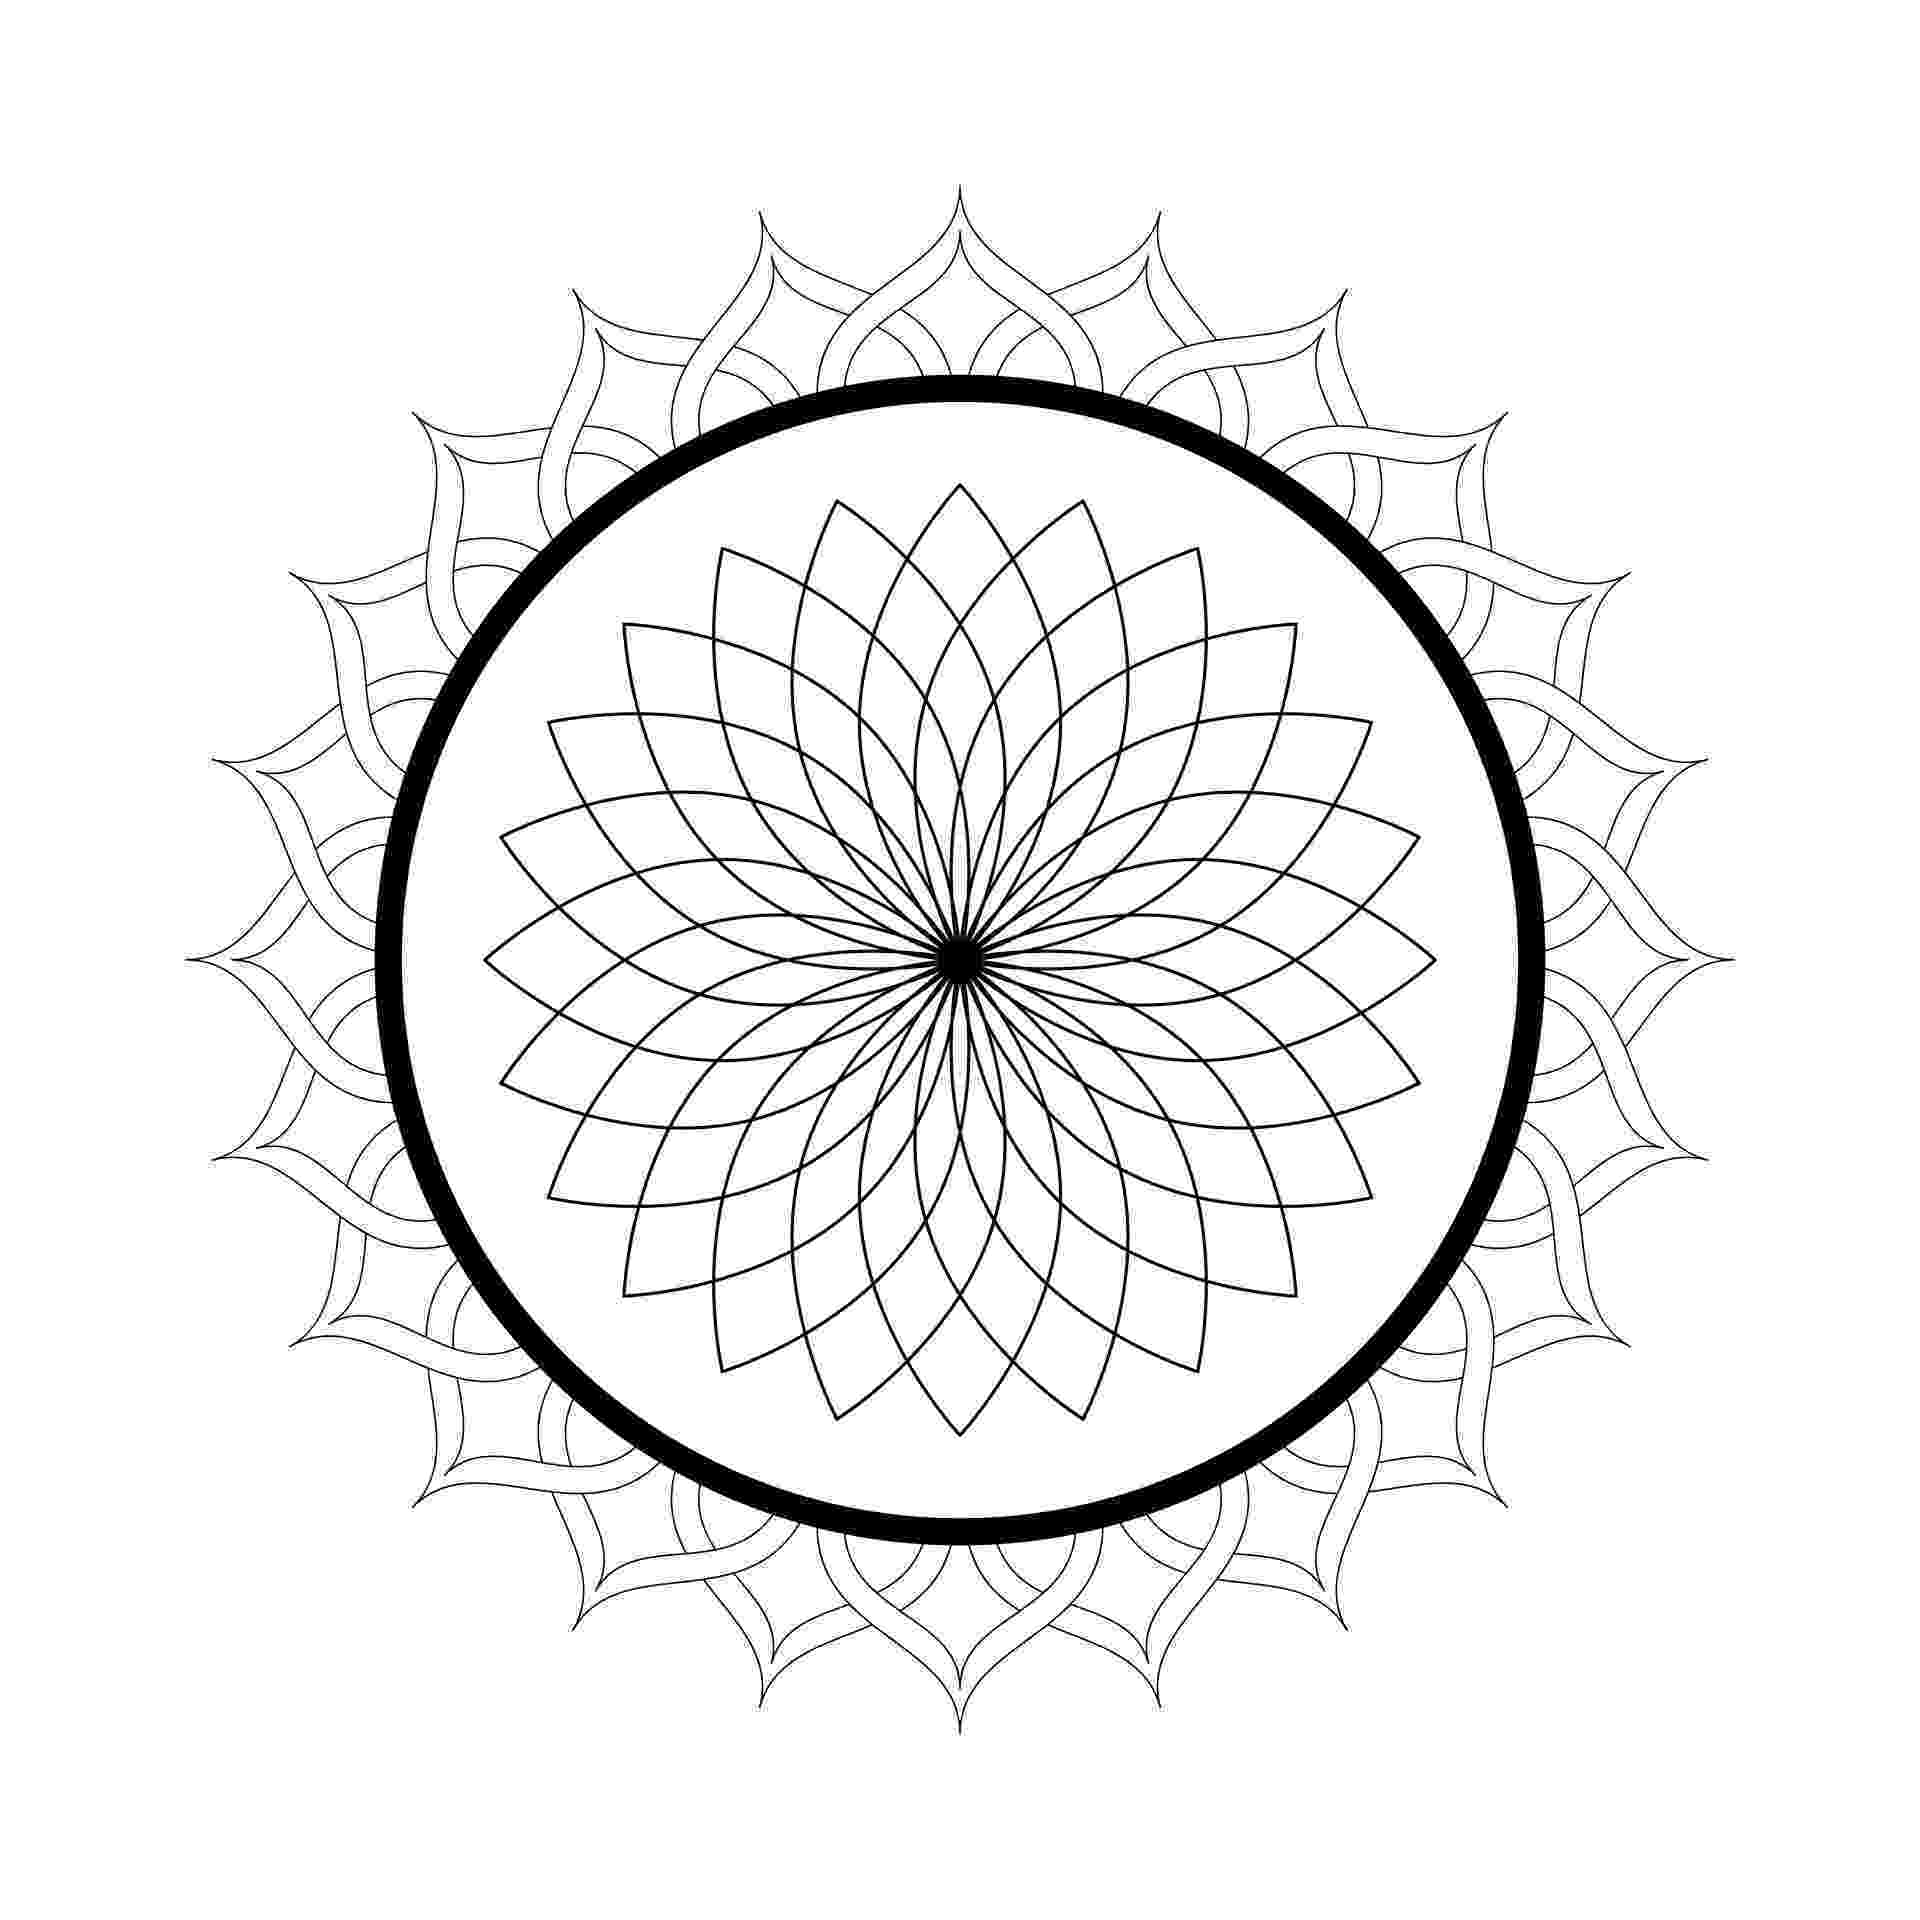 mandela colouring flower mandala coloring page free printable coloring pages colouring mandela